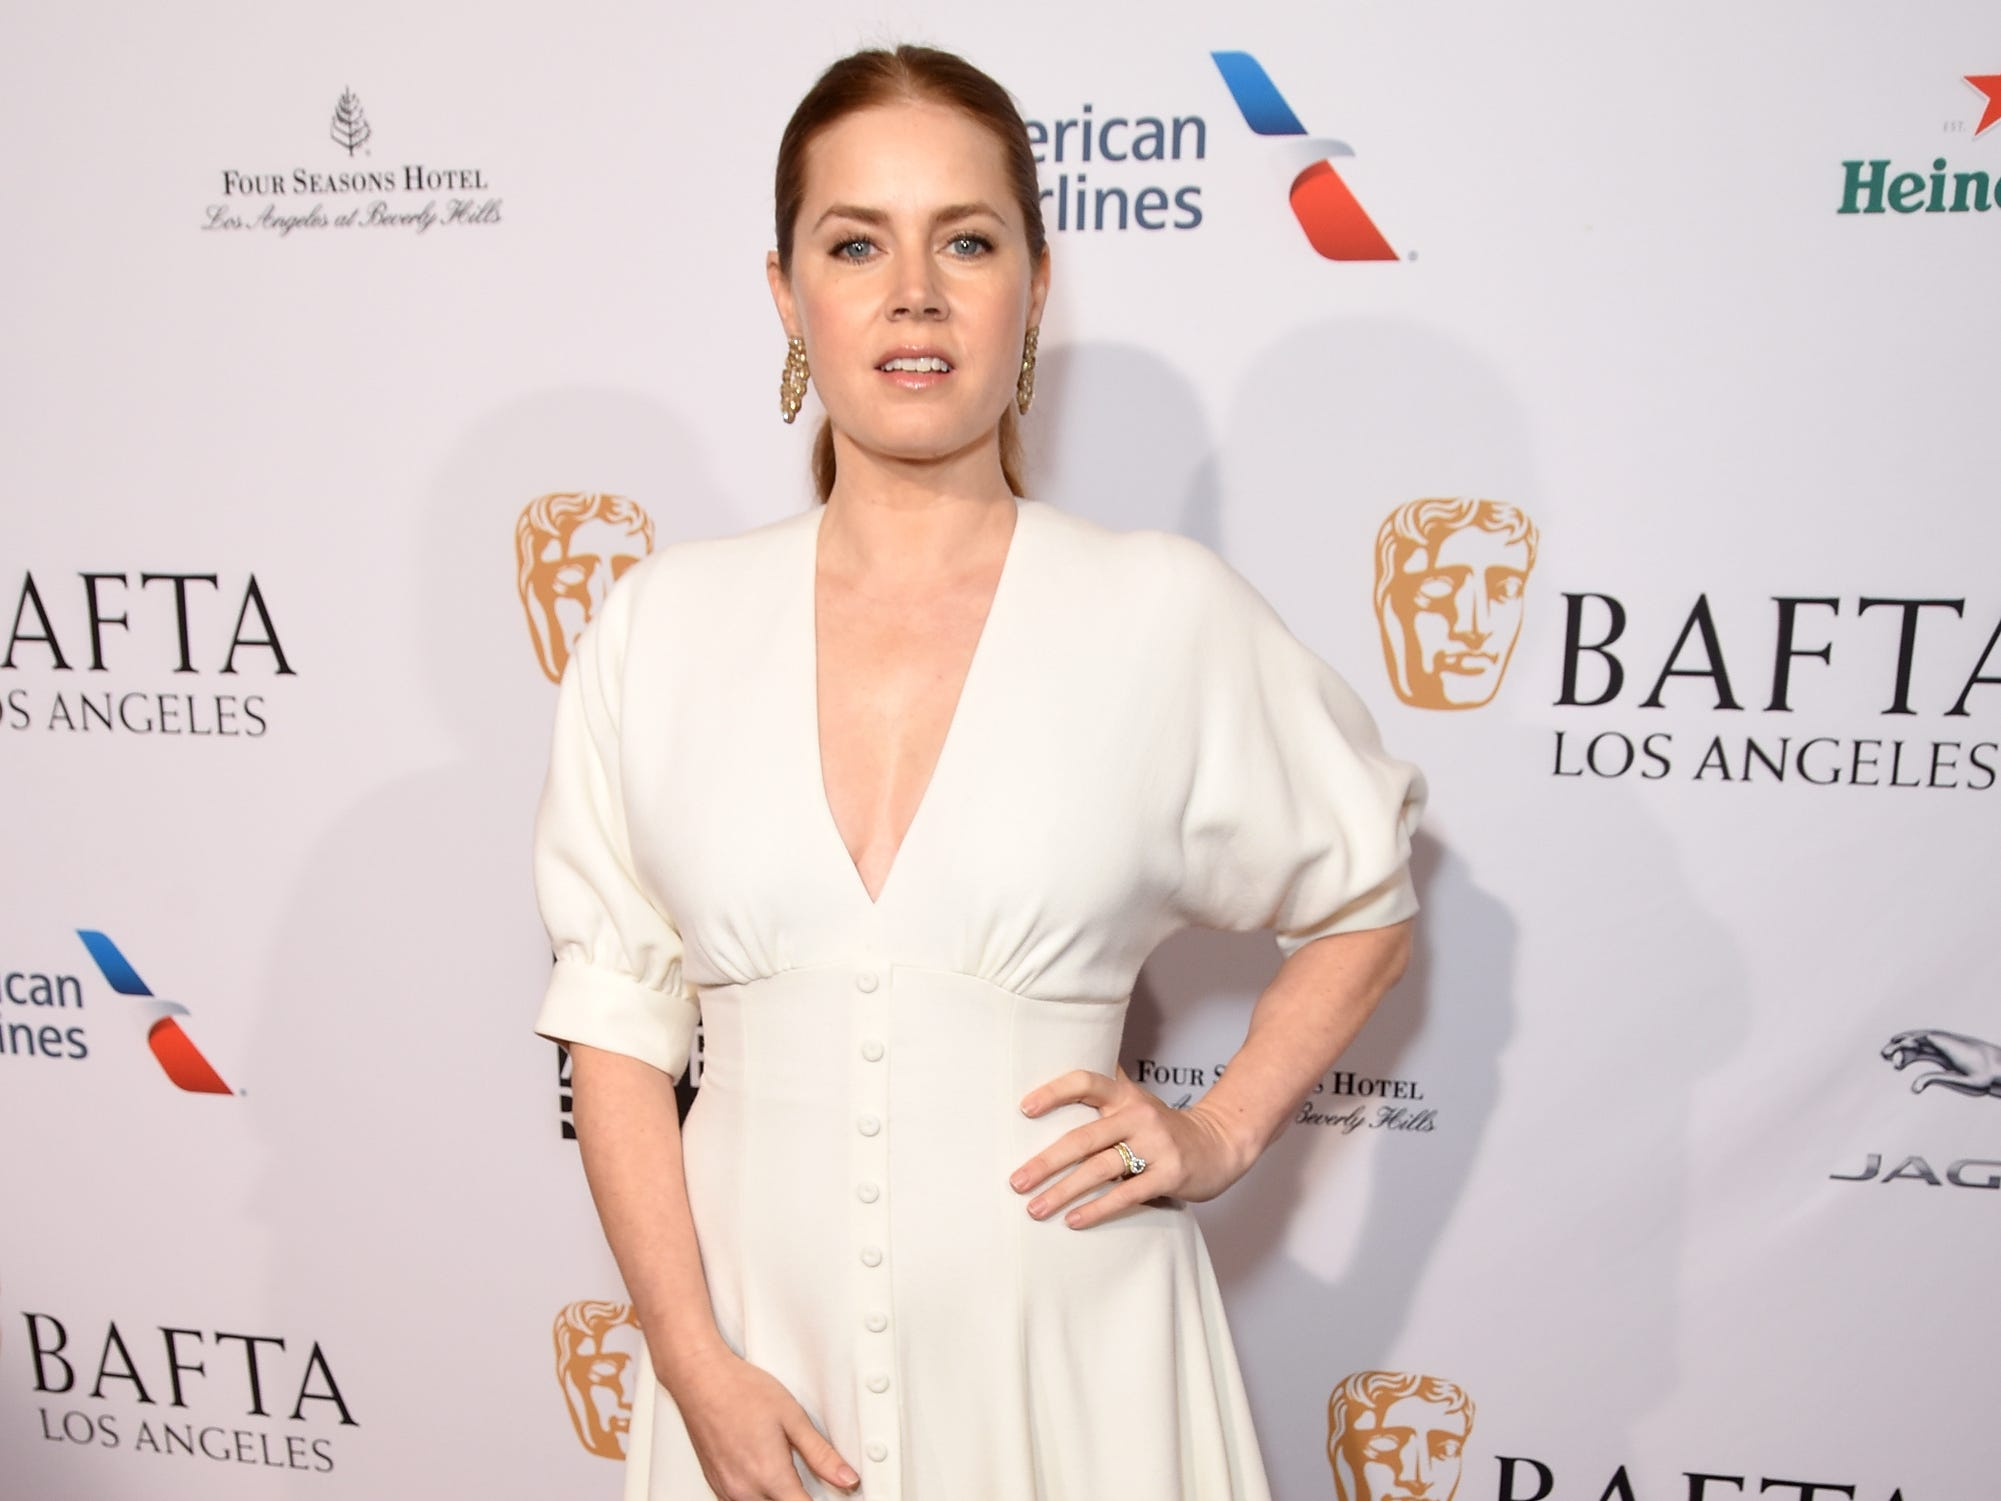 BEVERLY HILLS, CA - JANUARY 05:  Amy Adams attends the BBCA BAFTA Tea Party at Four Seasons Hotel Los Angeles at Beverly Hills on January 5, 2019 in Los Angeles, California.  (Photo by Presley Ann/Getty Images for BBCAmerica) ORG XMIT: 775276722 ORIG FILE ID: 1077925100